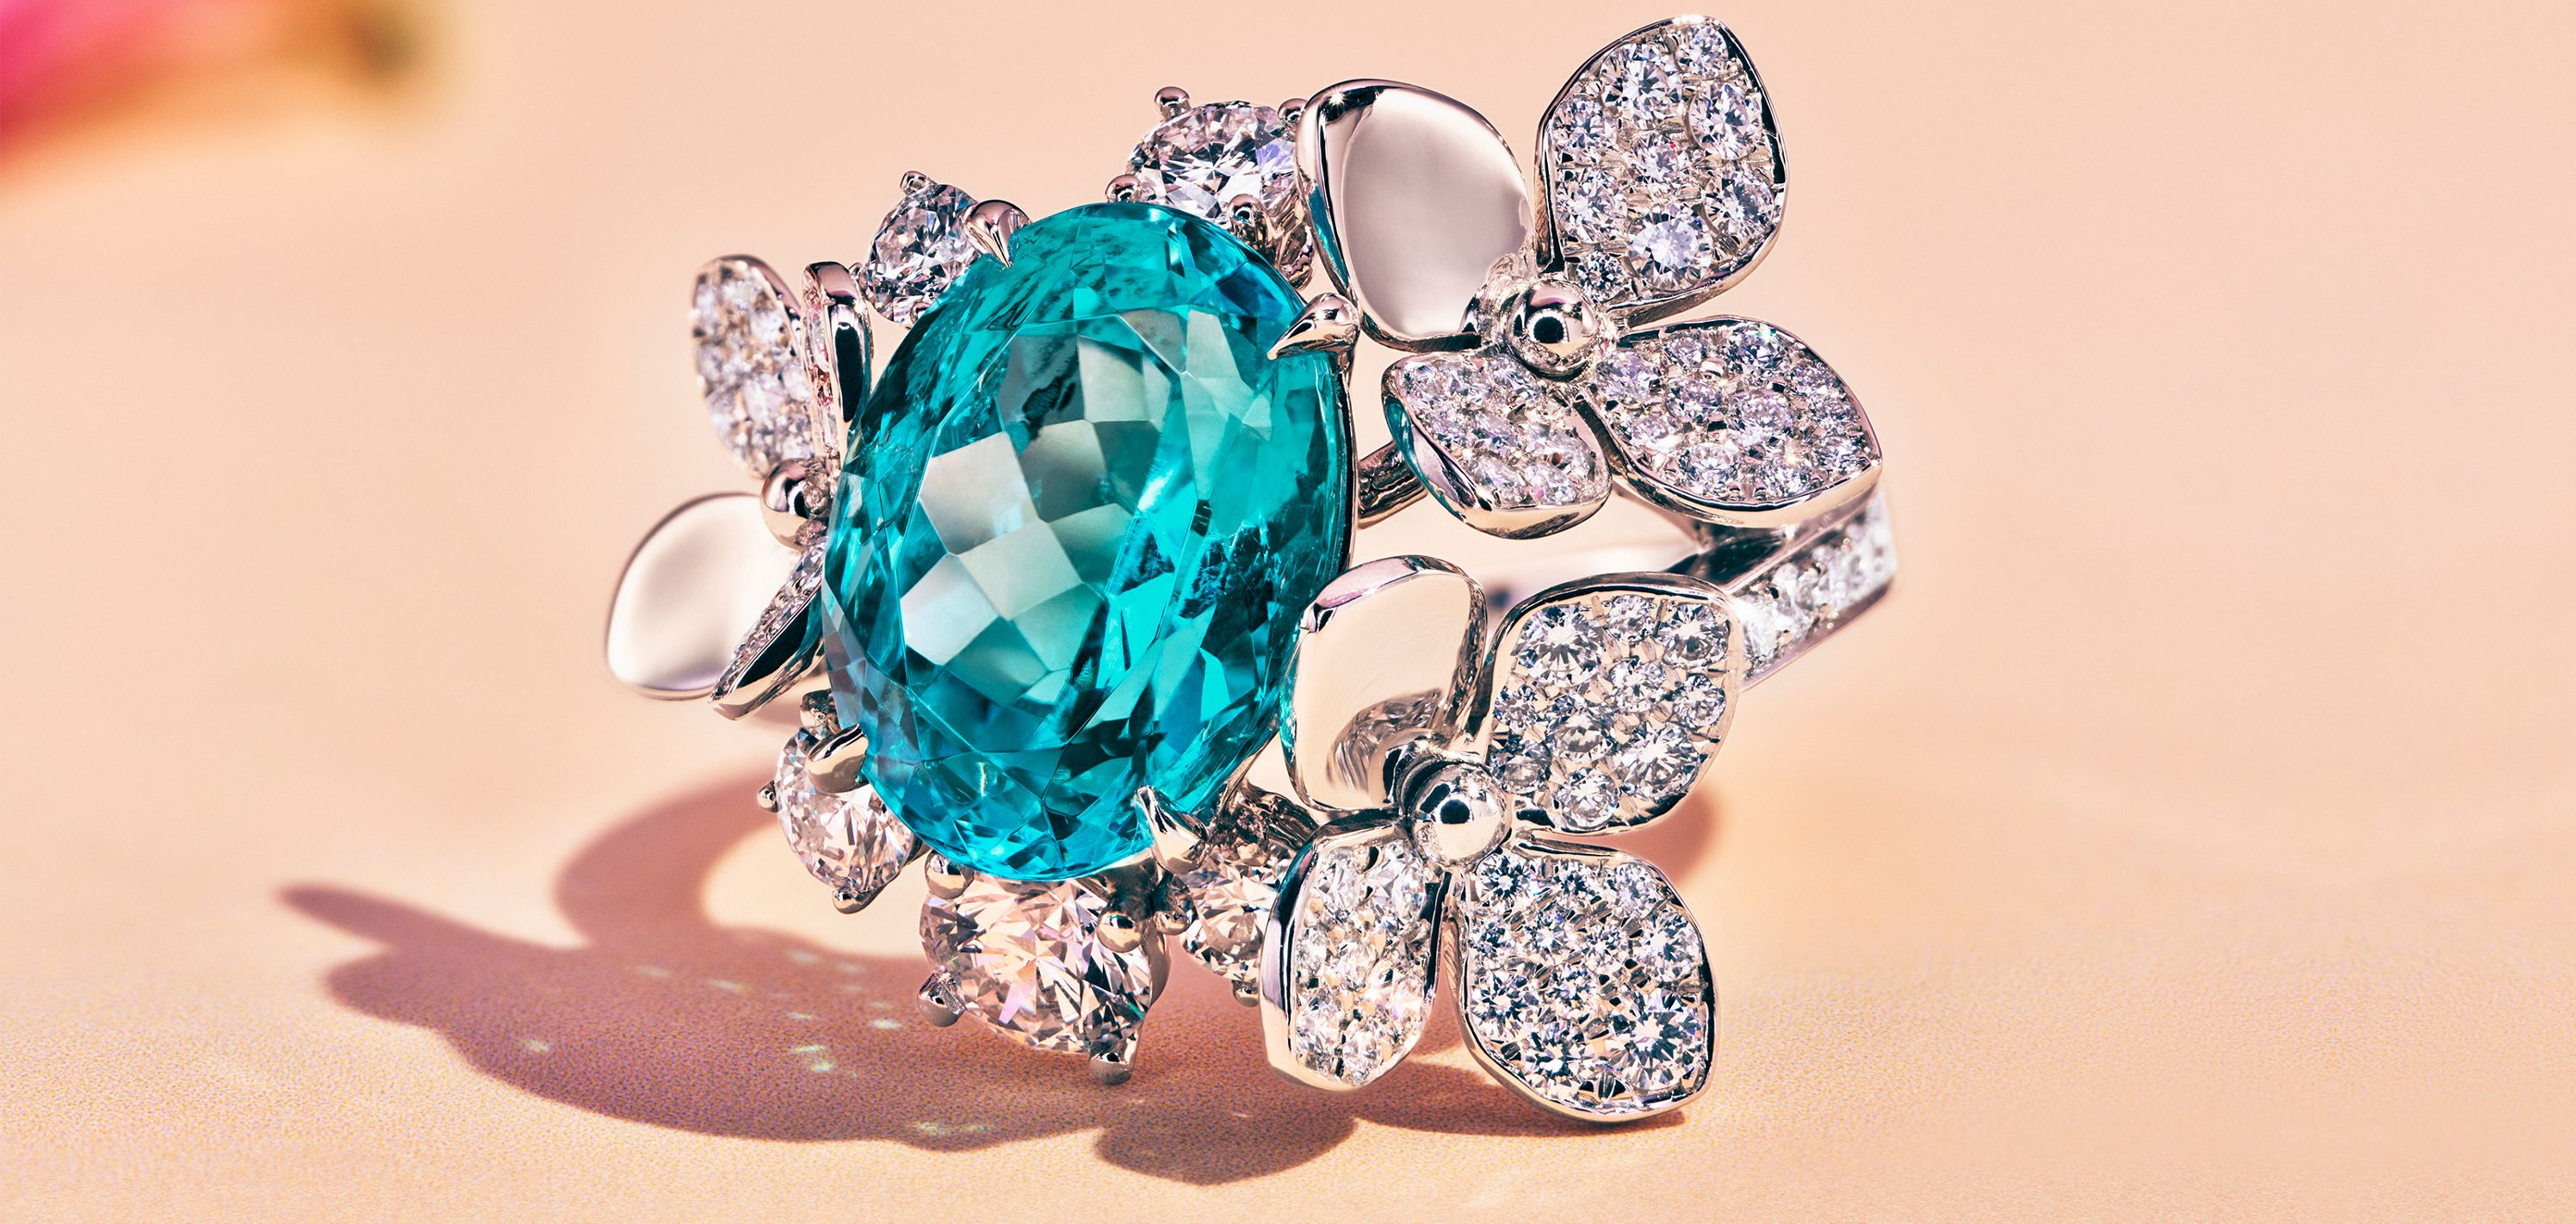 f5979a9c0460 Tiffany   Co. Blue Book 2018 Blue Tourmaline Ring